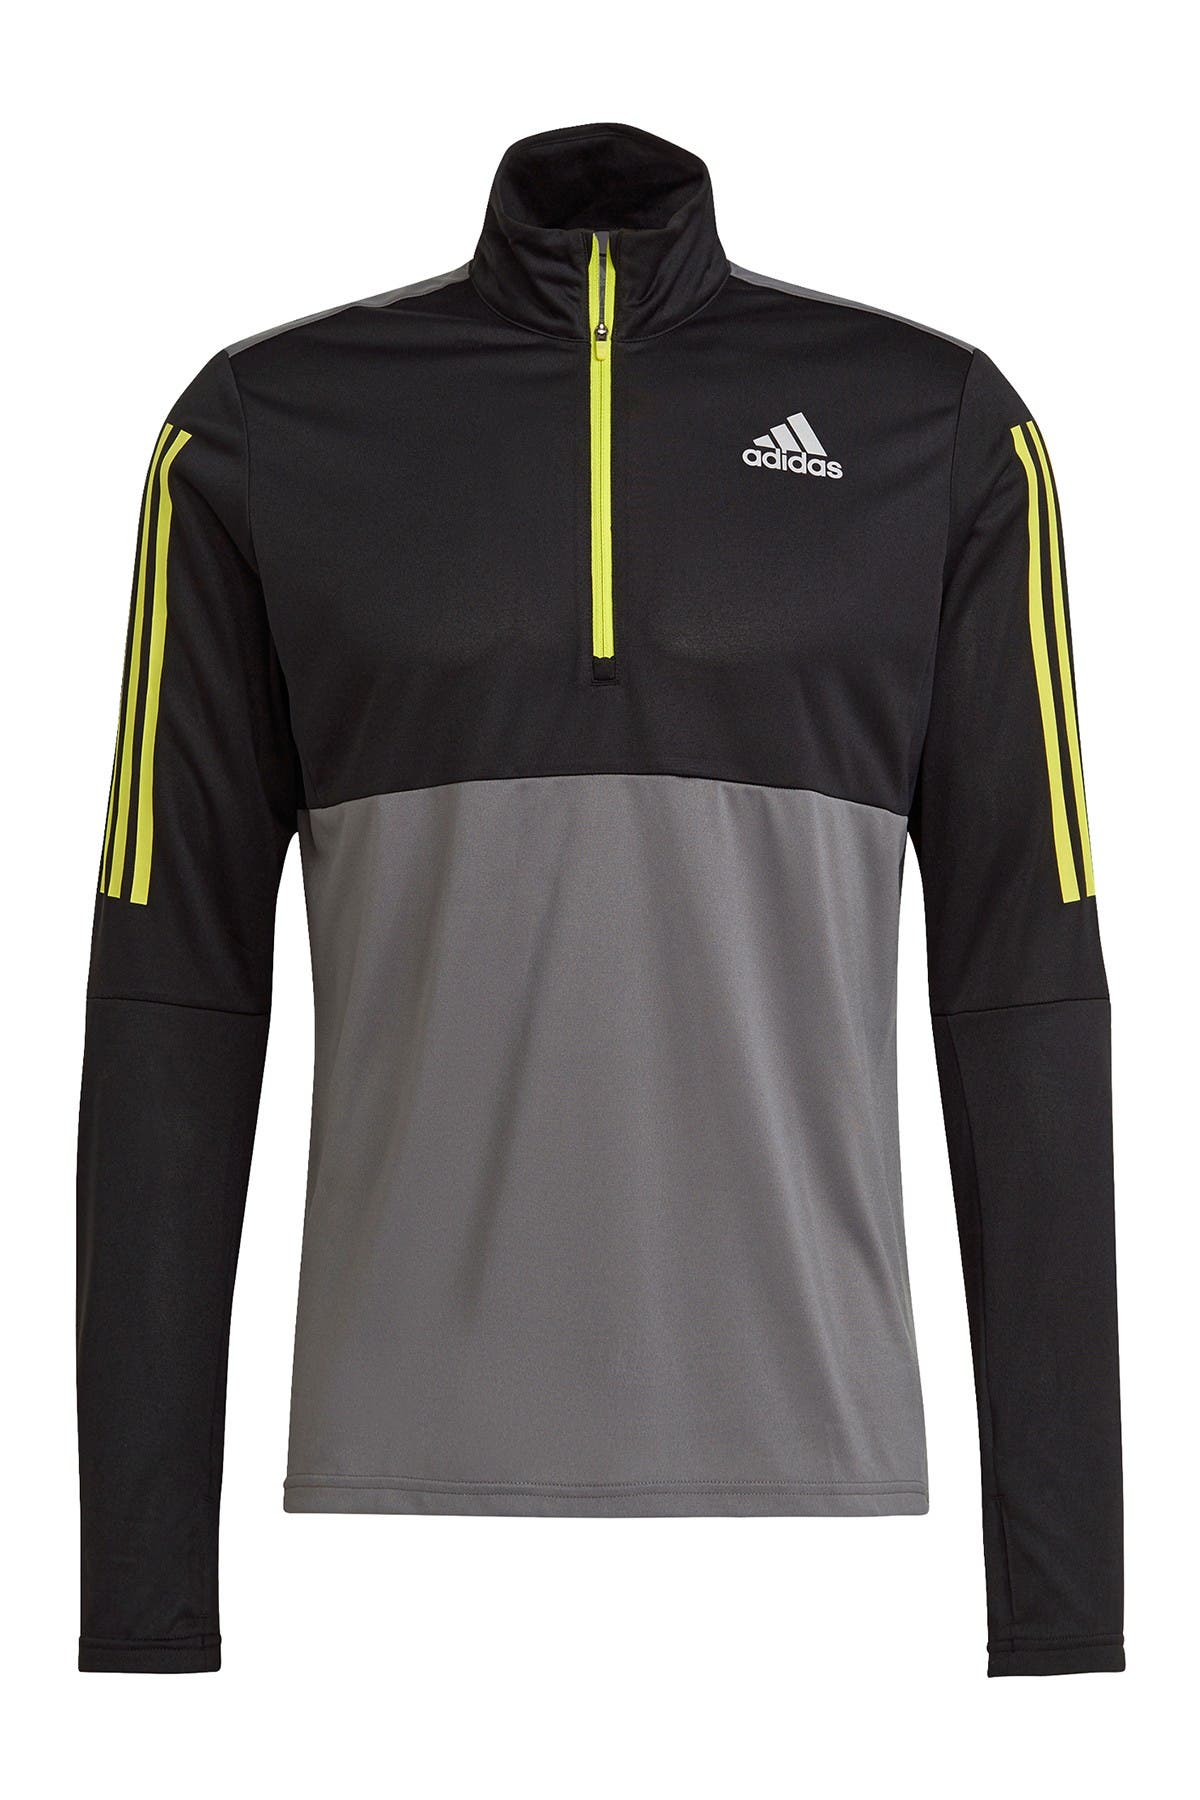 Image of adidas Own The Run Long Sleeve Active Shirt